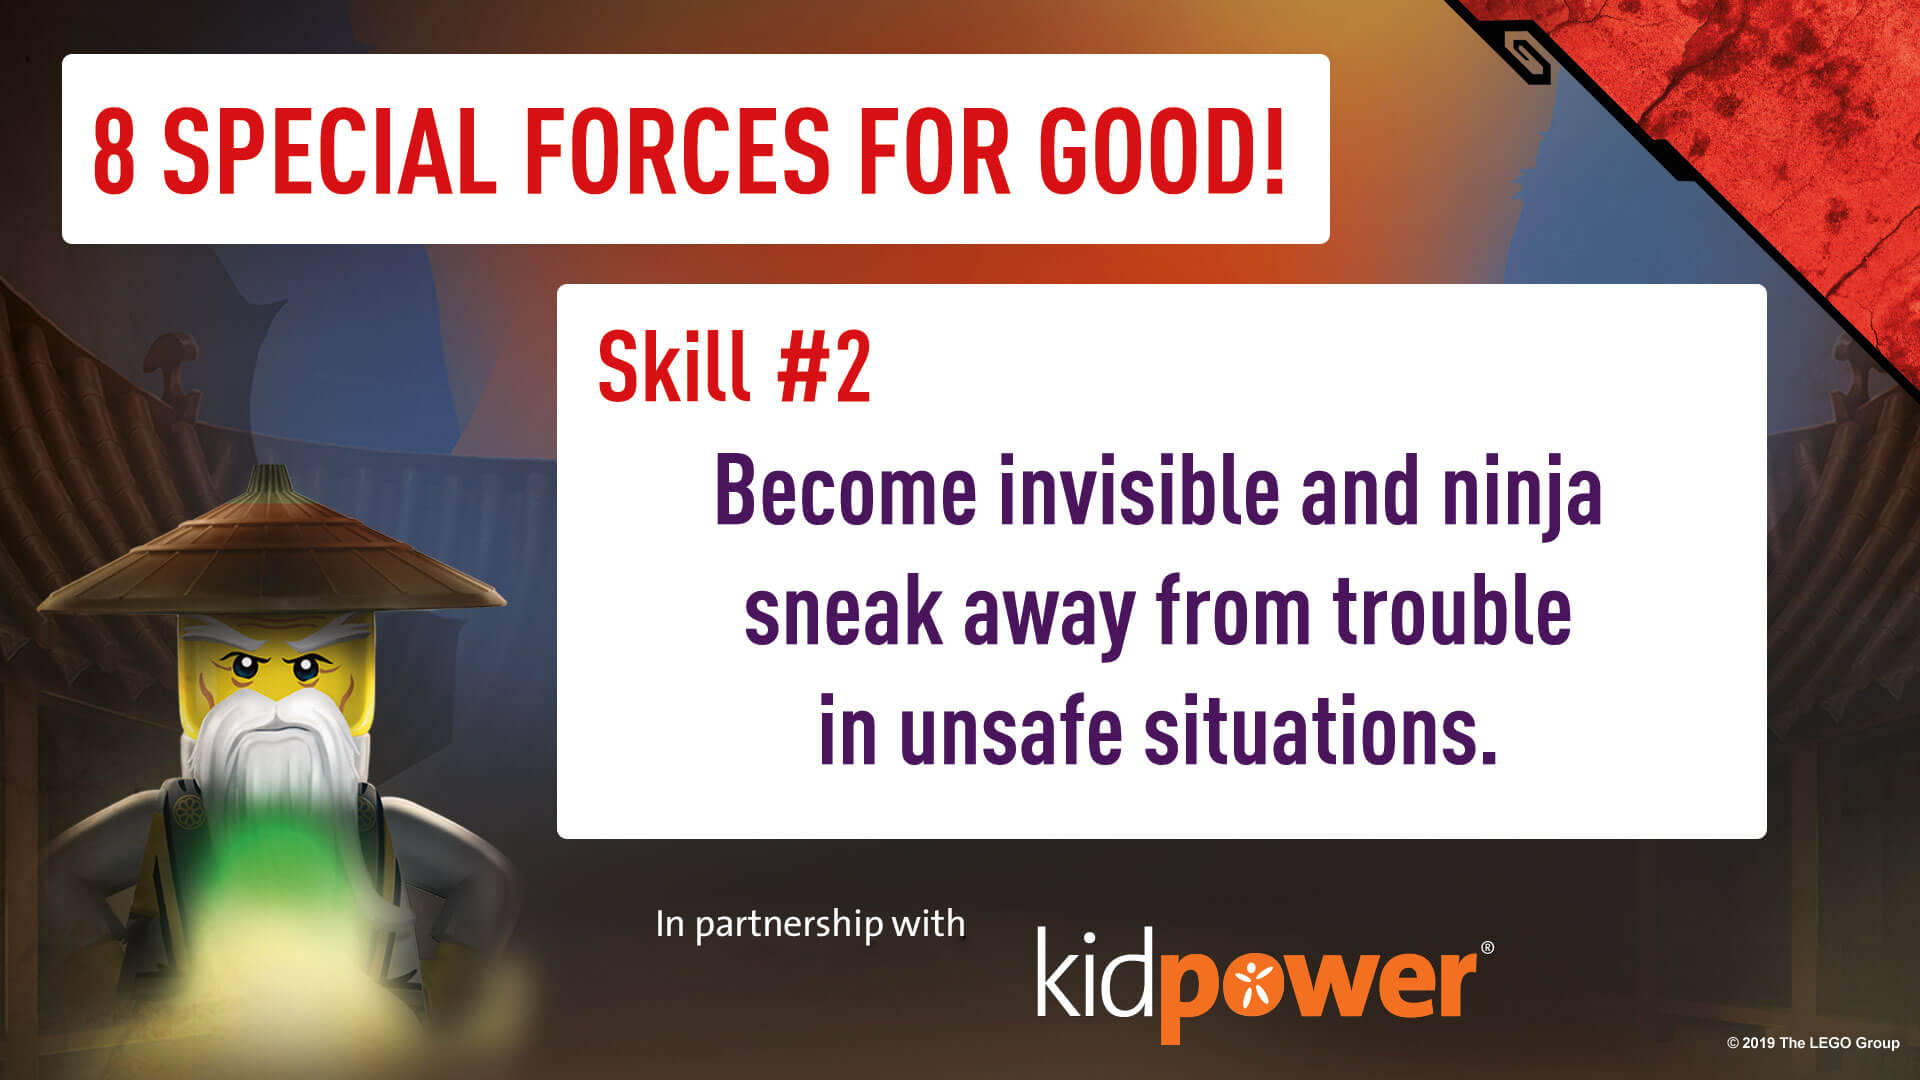 Special Forces For Good - Skill #2 - NINJAGO & KIDPOWER